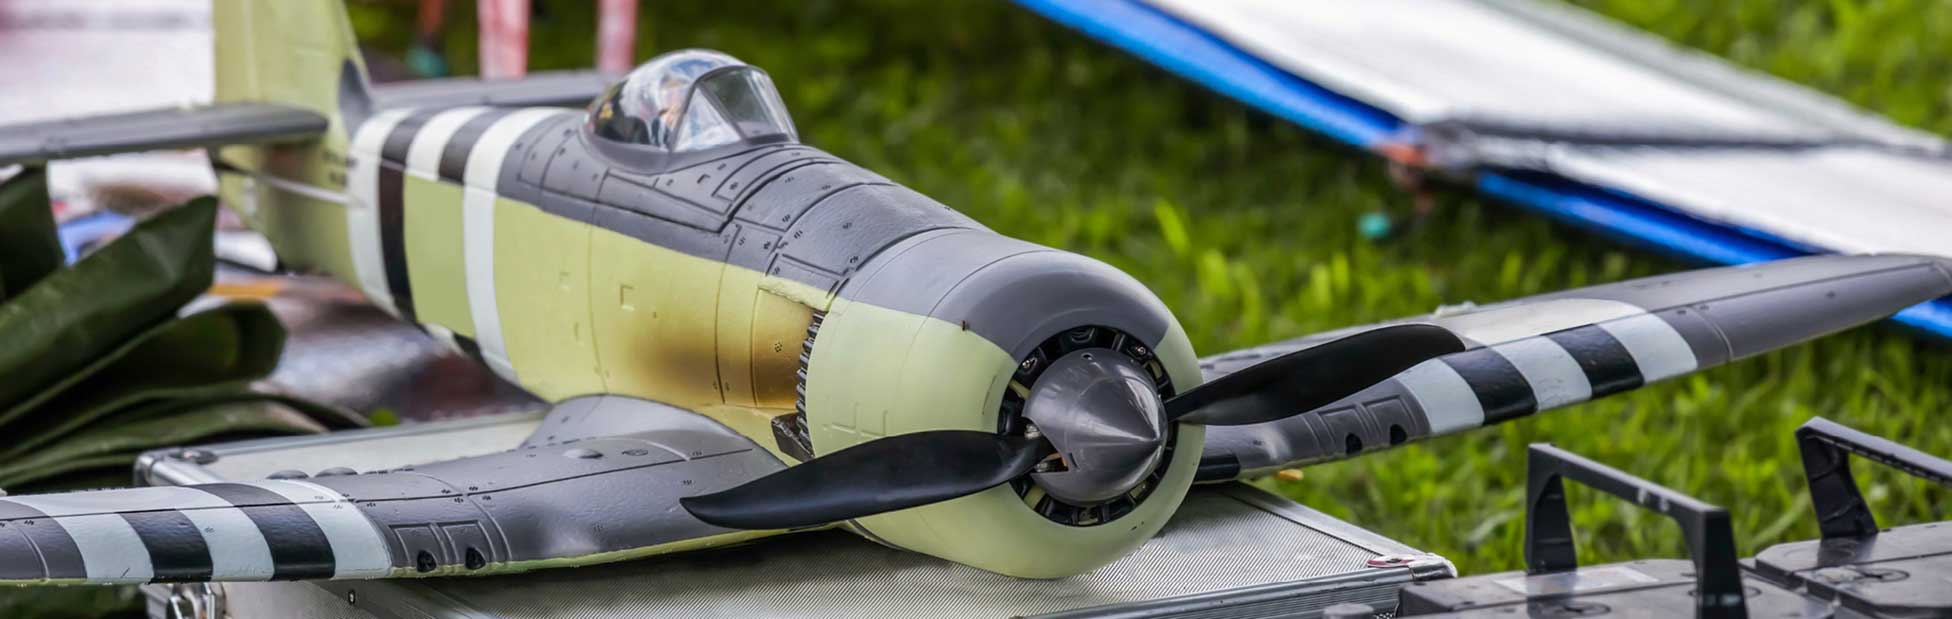 A model aeroplane sitting on the grass